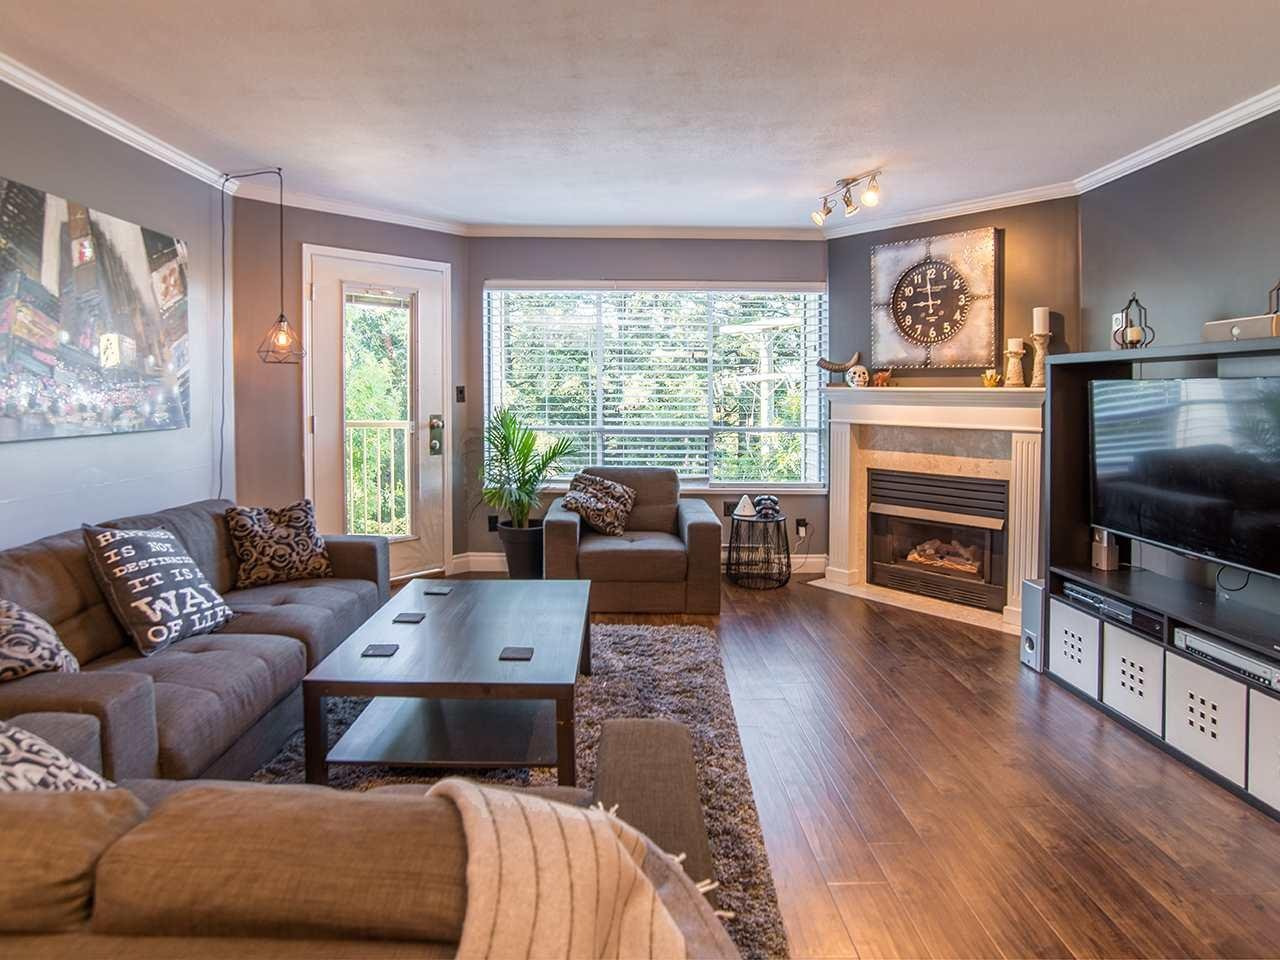 R2111354 - 306 5450 208TH STREET, Langley City, Langley, BC - Apartment Unit